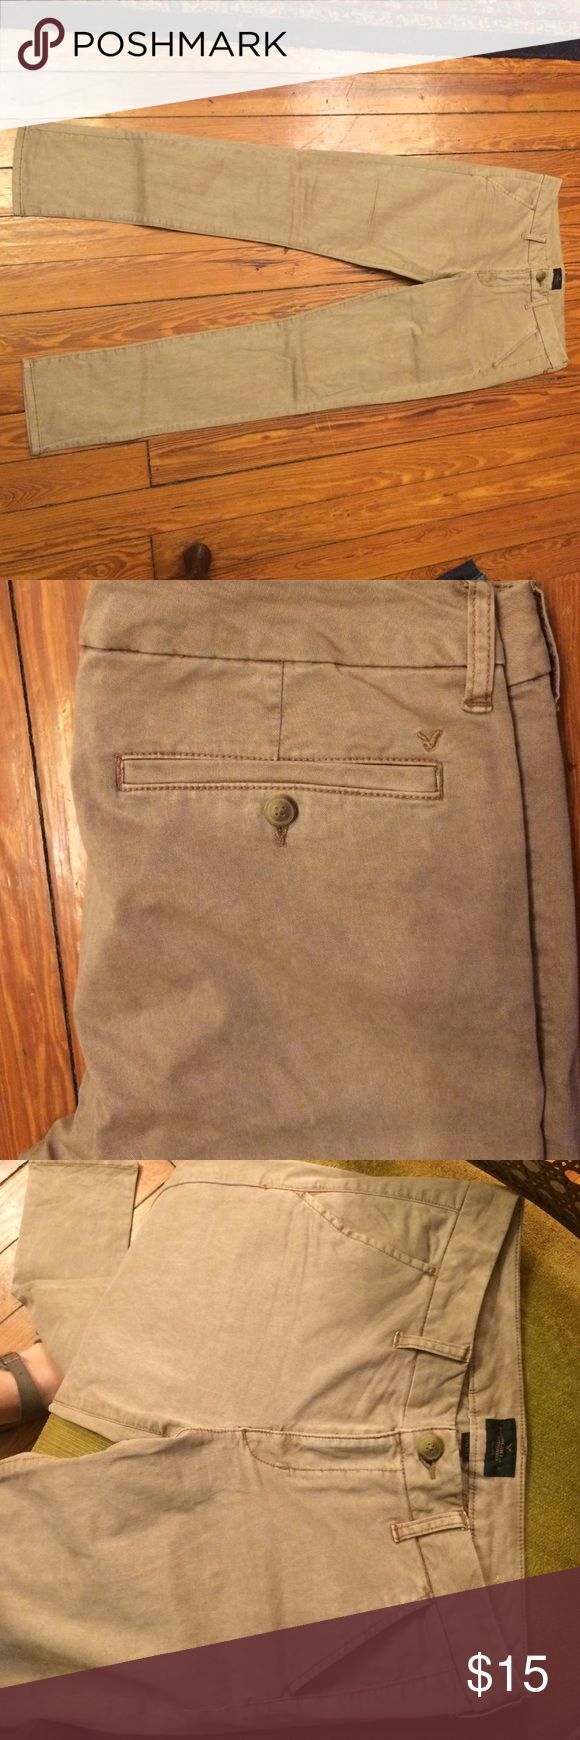 American Eagle skinny Khaki NWOT. NEVER WORN! Women's size 10 American Eagle Outfitters Skinny Khaki Pants. Stretchy and super cute. American Eagle Outfitters Pants Skinny